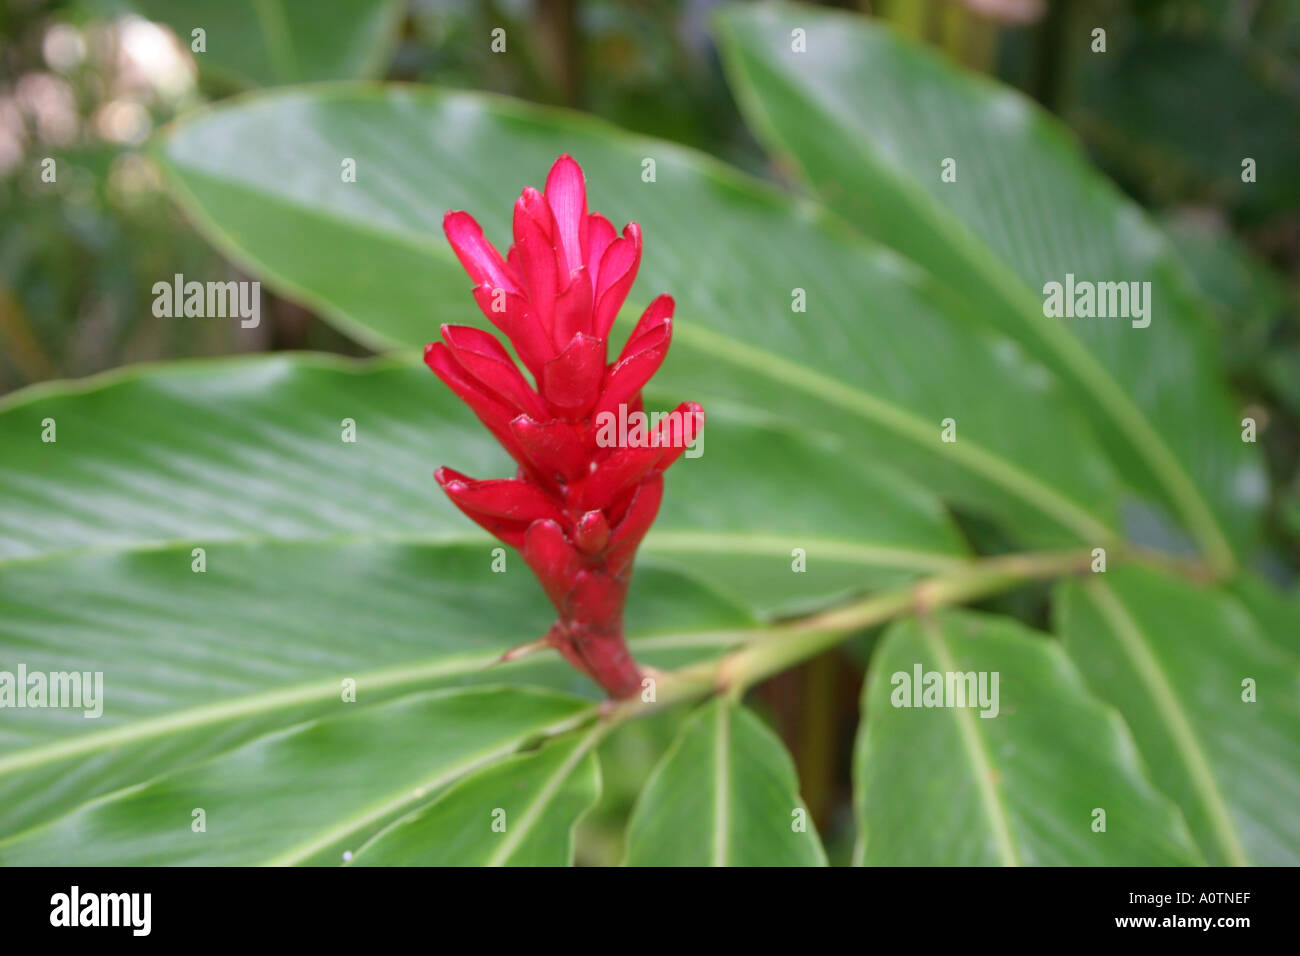 Ginger flower bud stock photos ginger flower bud stock images alamy young red ginger flower growing at end of leafy stalk hawaii stock image izmirmasajfo Gallery